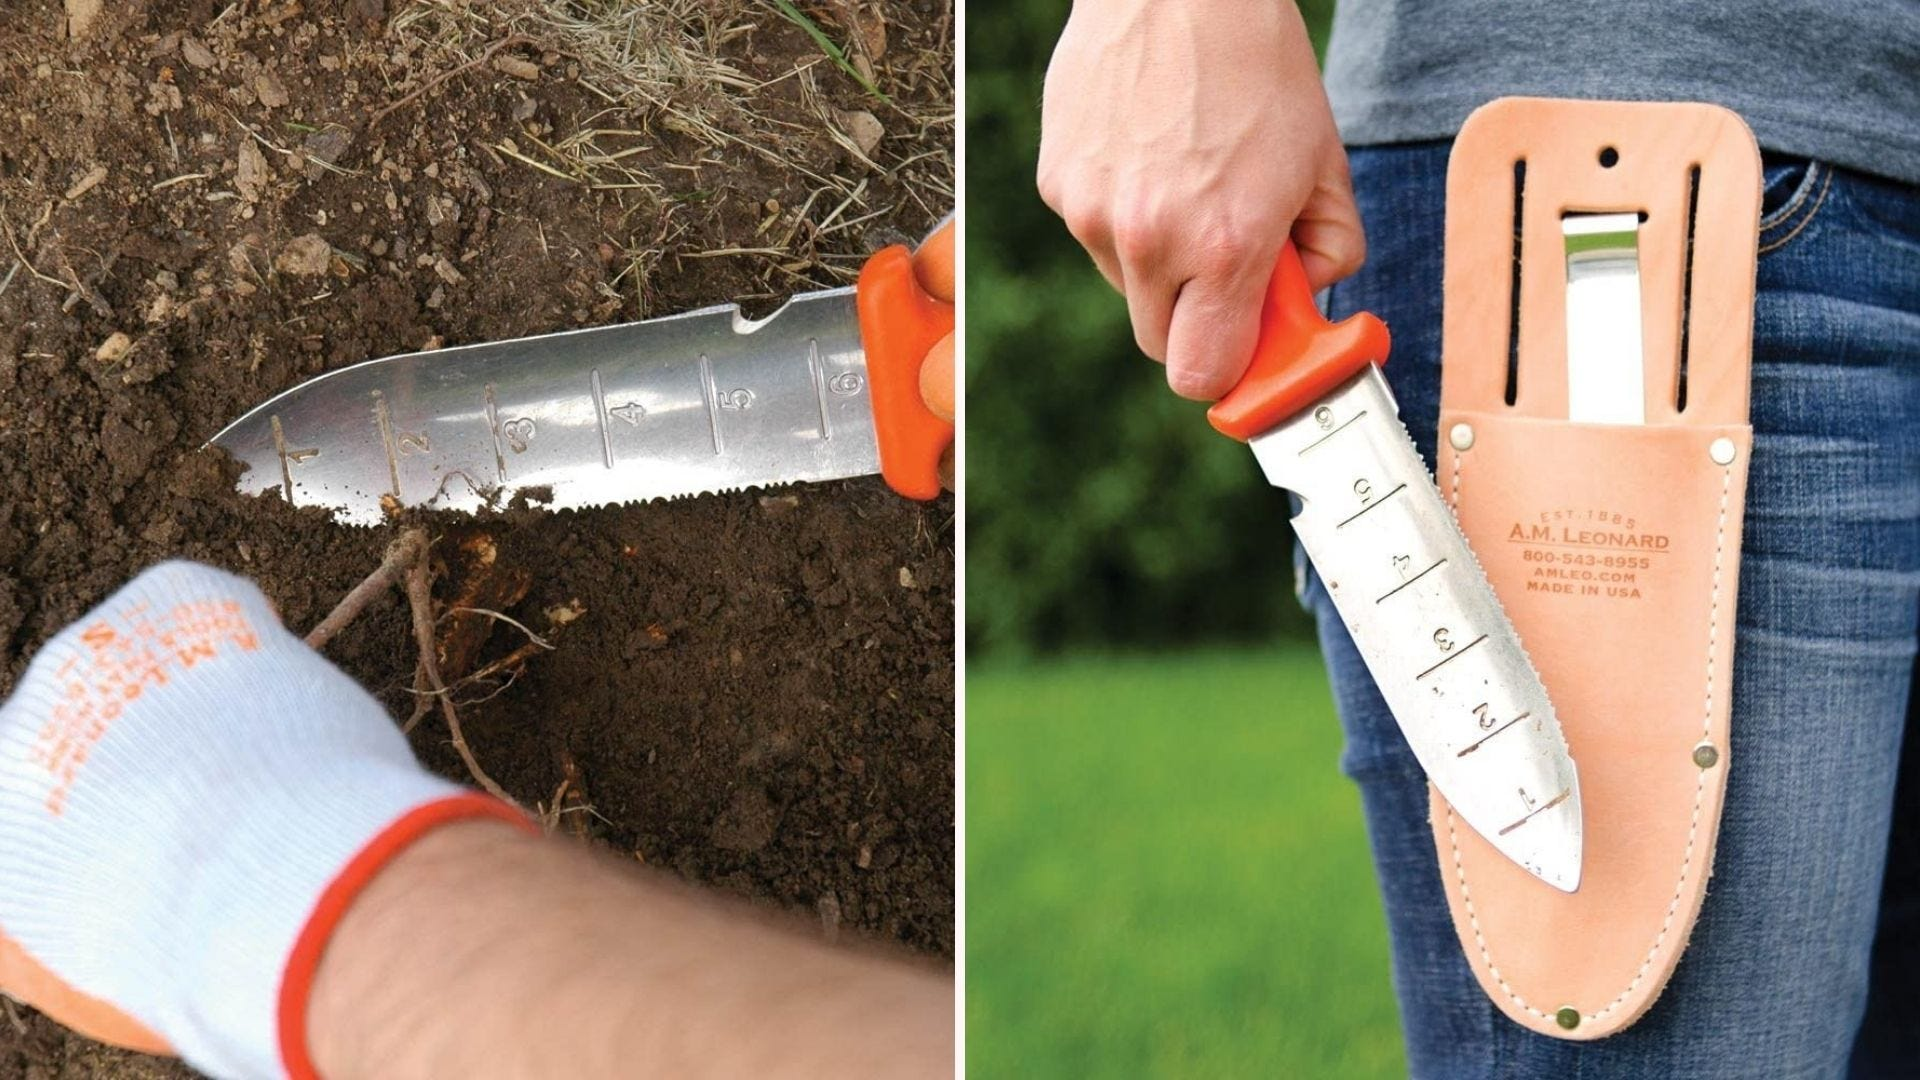 A soil knife in the dirt; a man holding a soil knife by its sheath